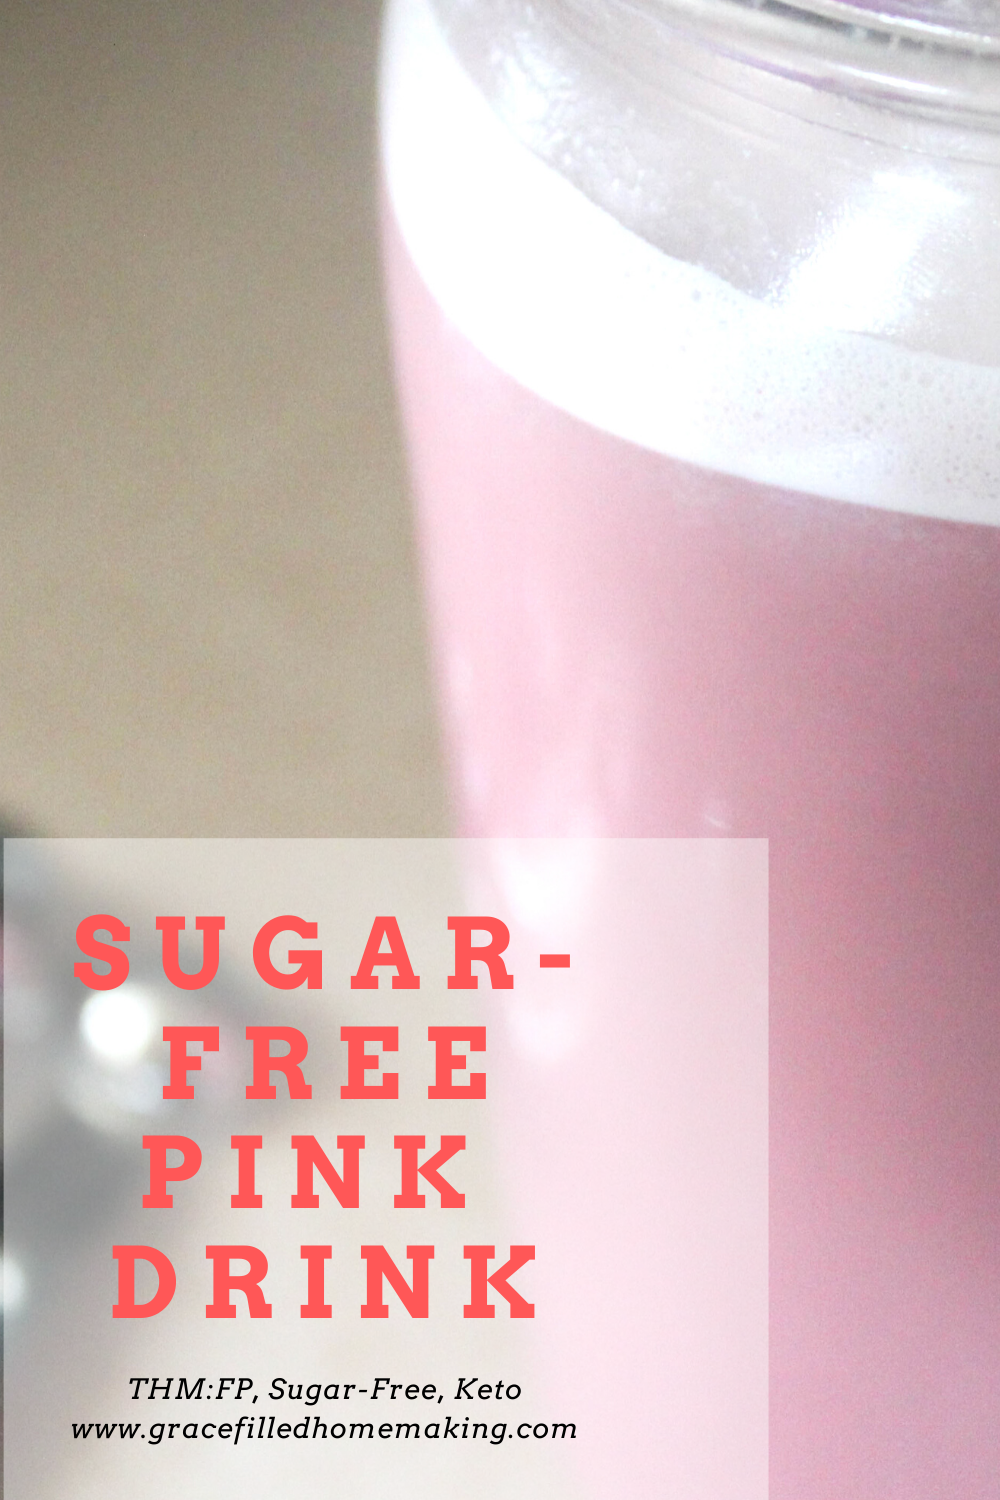 Craving a pink drink without all the sugar? Here's my healthy version! It's sugar-free, dairy-free, and a Trim Healthy Mama Fuel Pull.